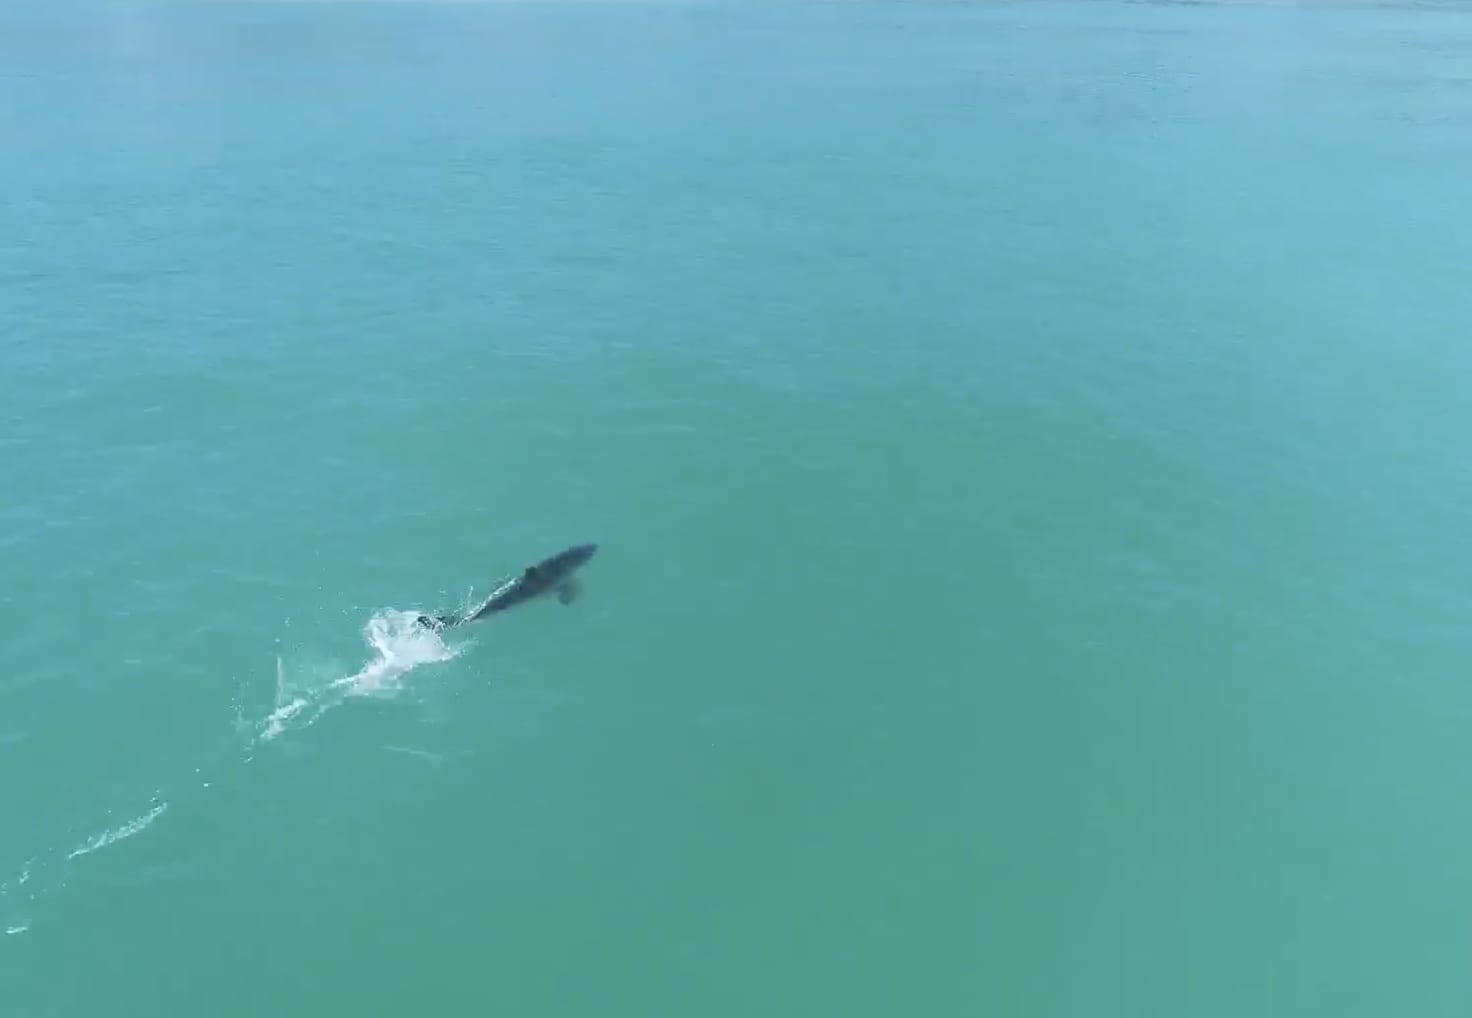 Drone captures shark swimming at high speed off the coast of Capo Beach